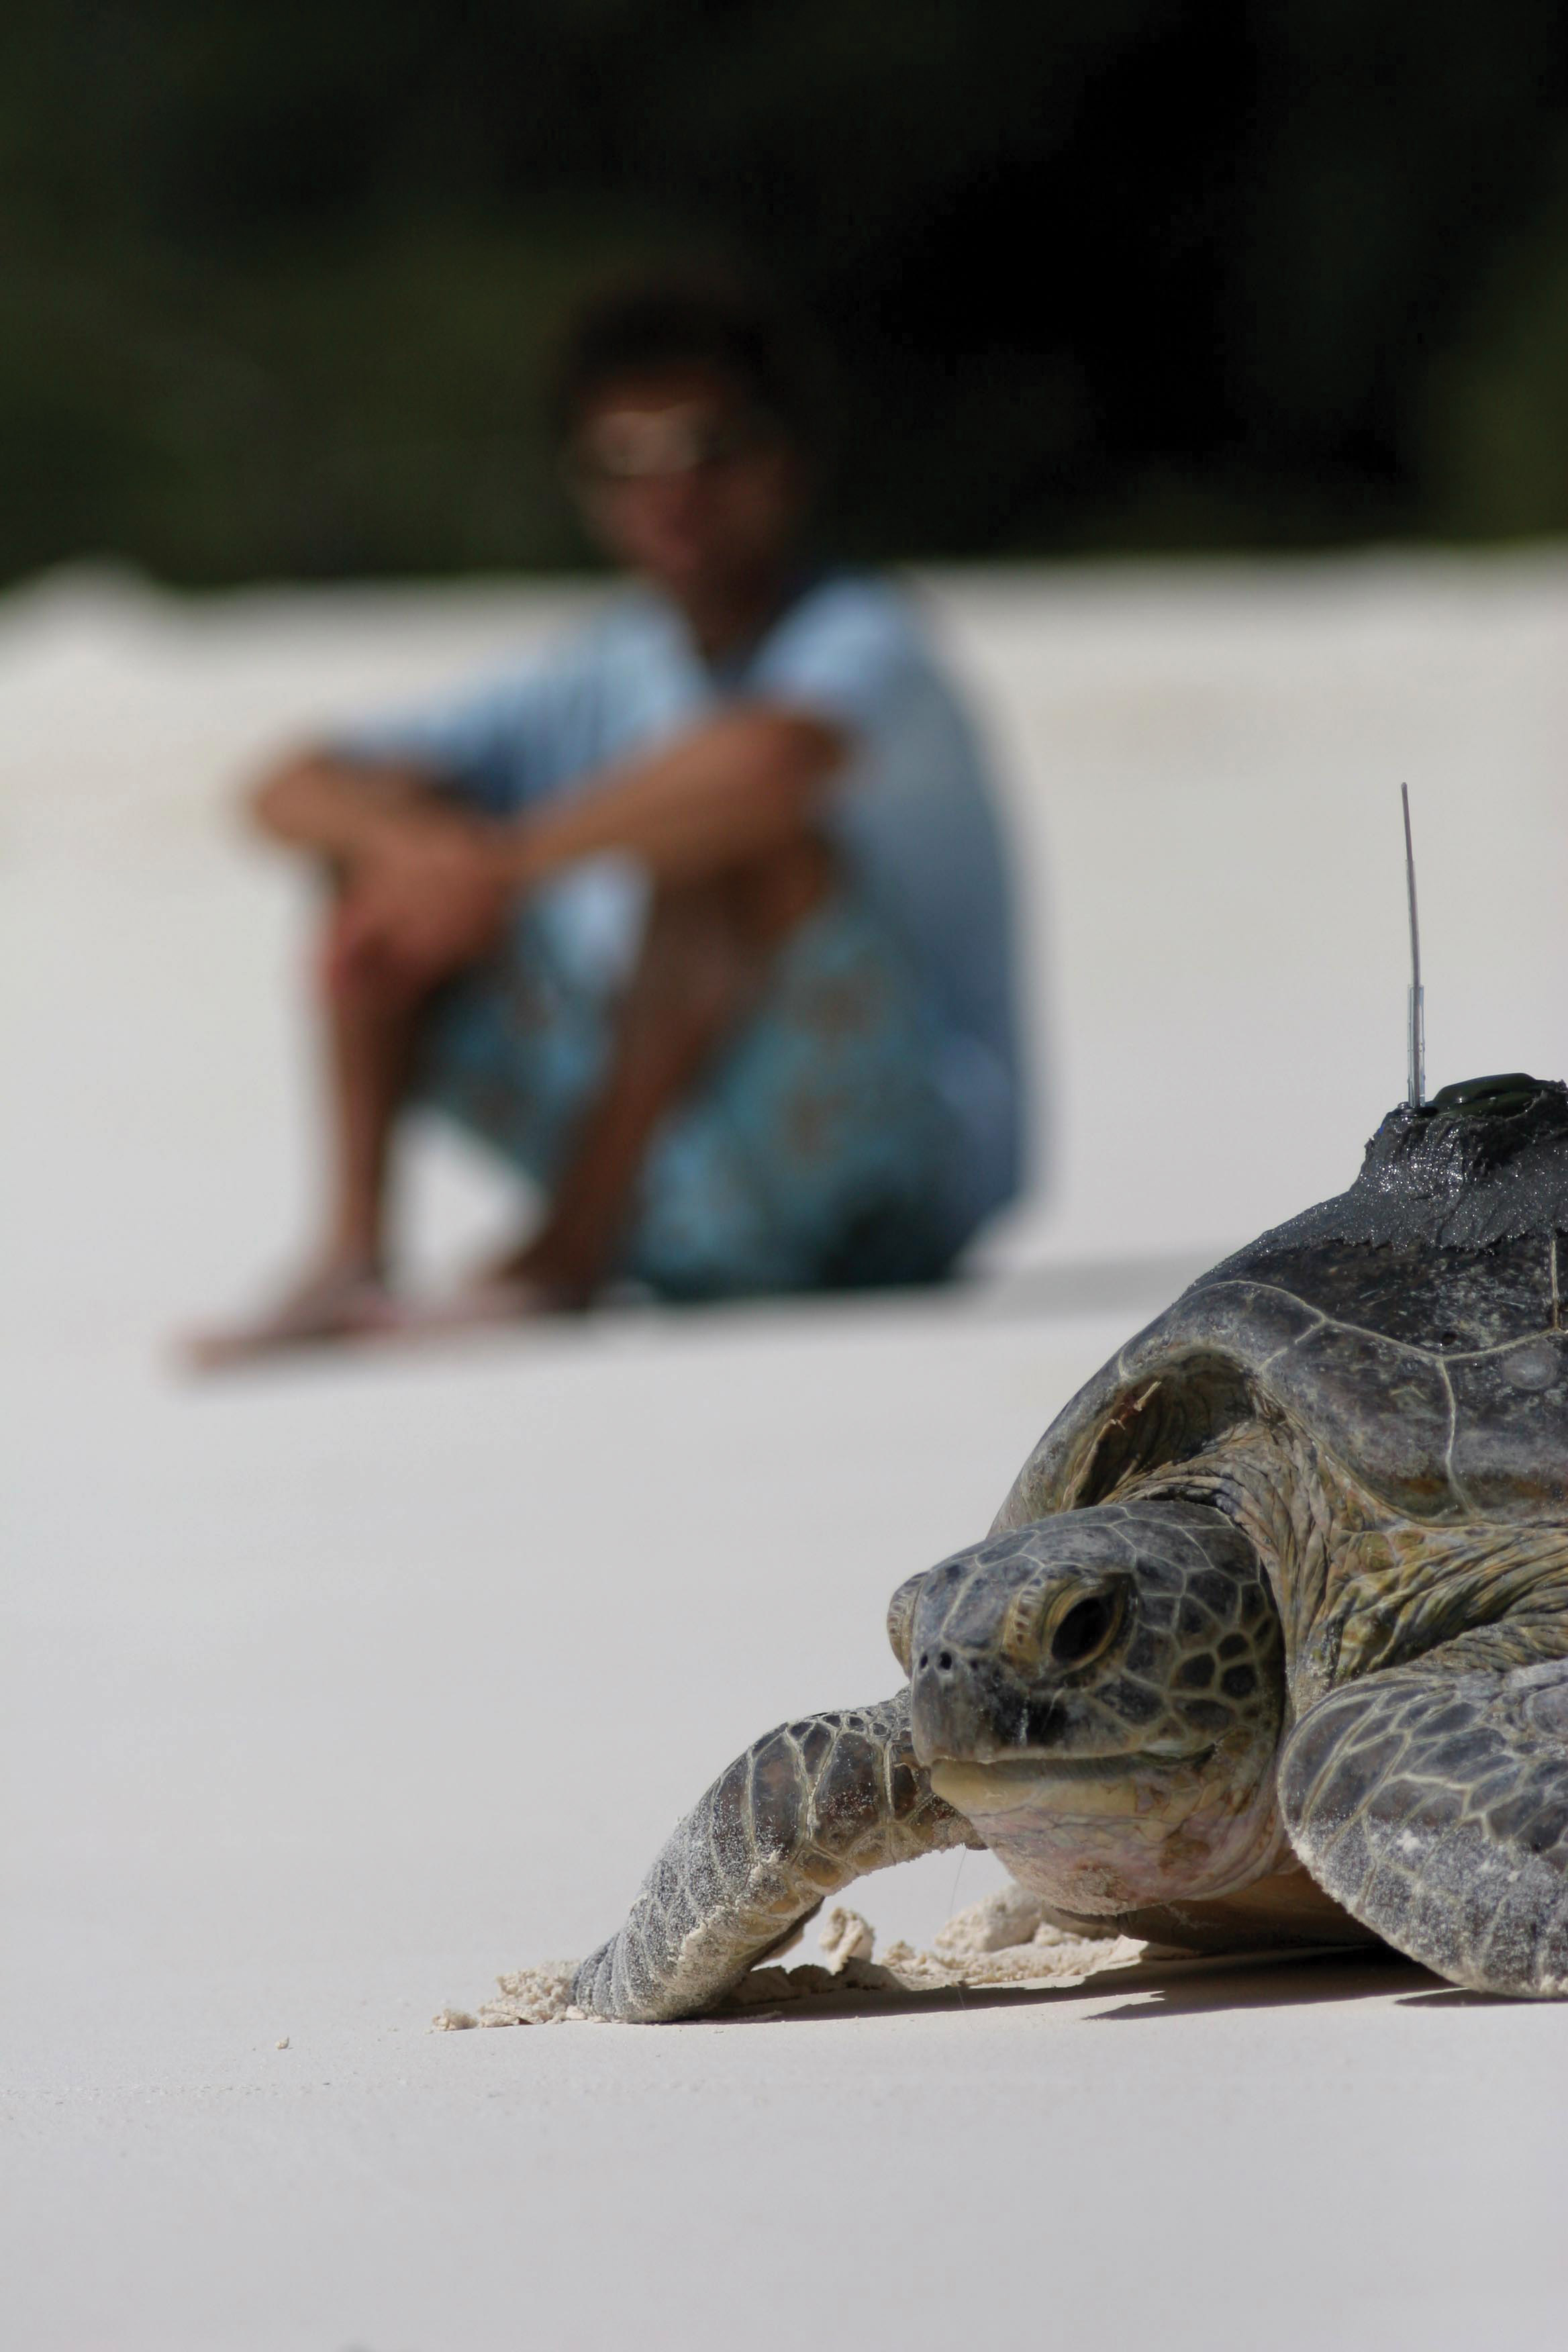 A student looks on as a green turtle fitted with a satellite tracking device returns to the sea on Glorieuses Island in the French Îles Éparses. The turtle was tracked as part of a study to identify foraging areas and monitor postnesting movements. © Jérôme Bourjea